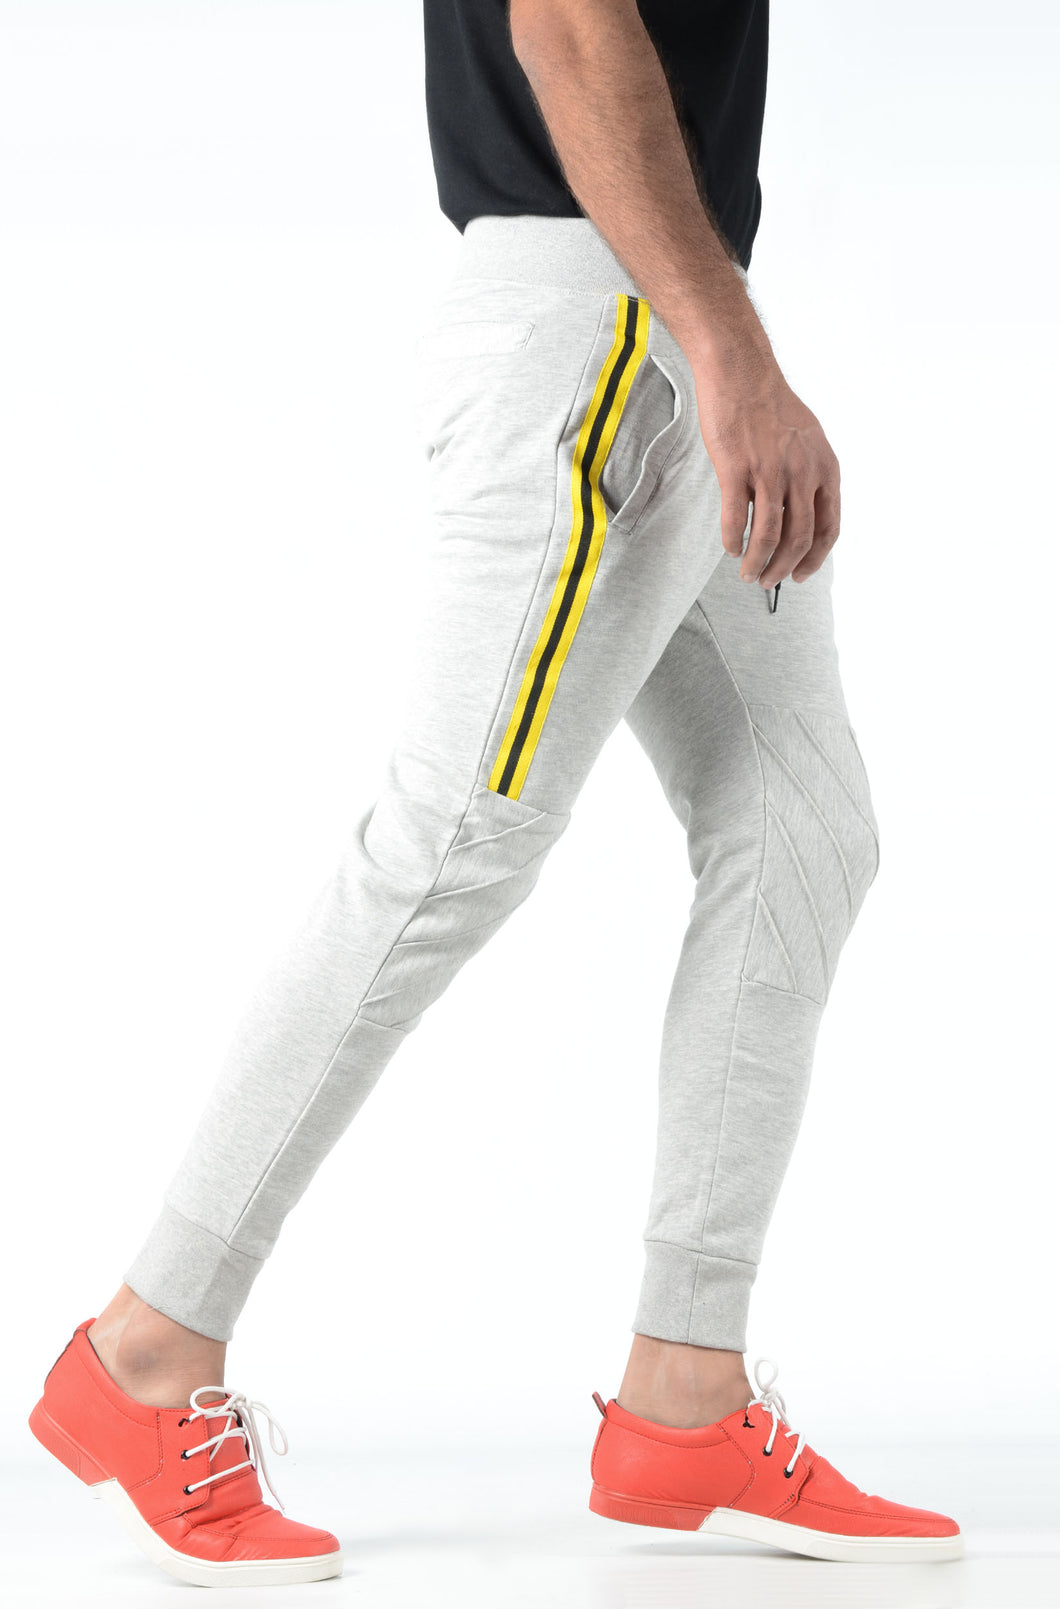 S&F MEN'S JOGGER PANTS (4647417184388)